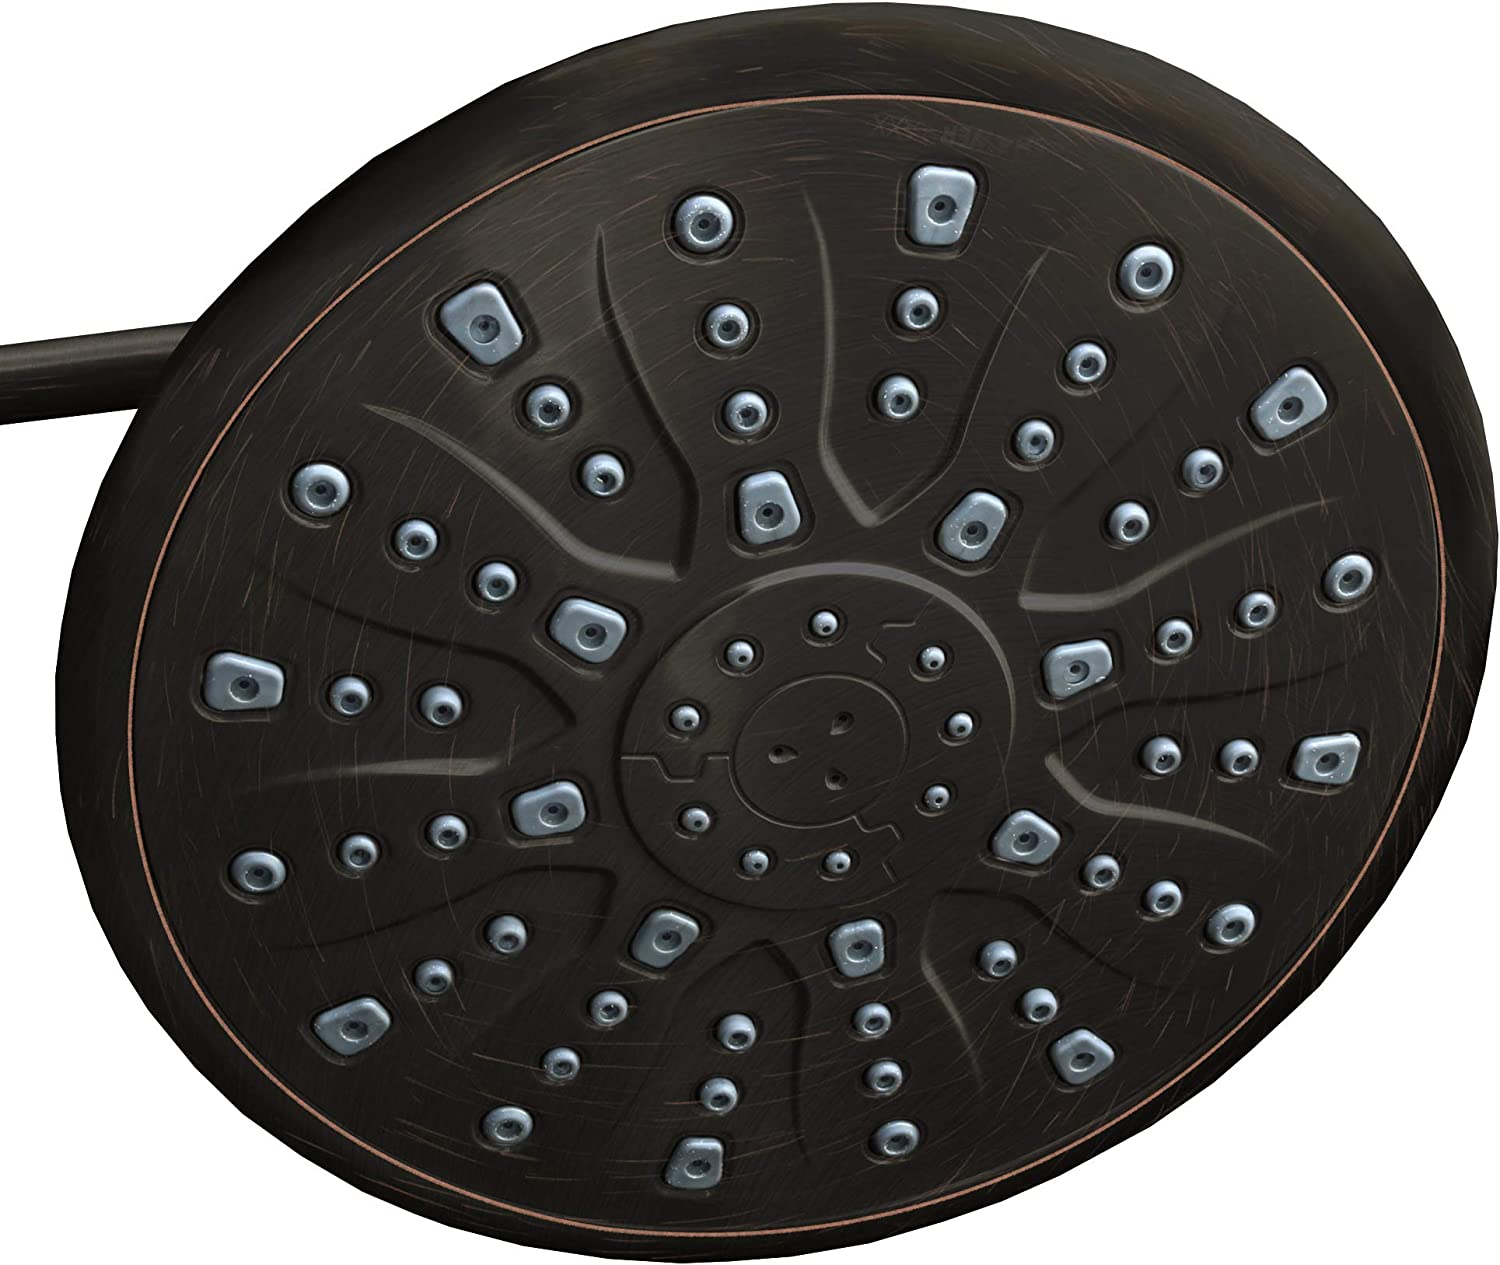 ShowerMaxx, Elite Series, 9 inch Round High Pressure Rainfall Shower Head, MAXX-imize Your Rainfall Experience with Easy-to-Remove Flow Restrictor Rain Showerhead, Oil Rubbed Bronze Finish